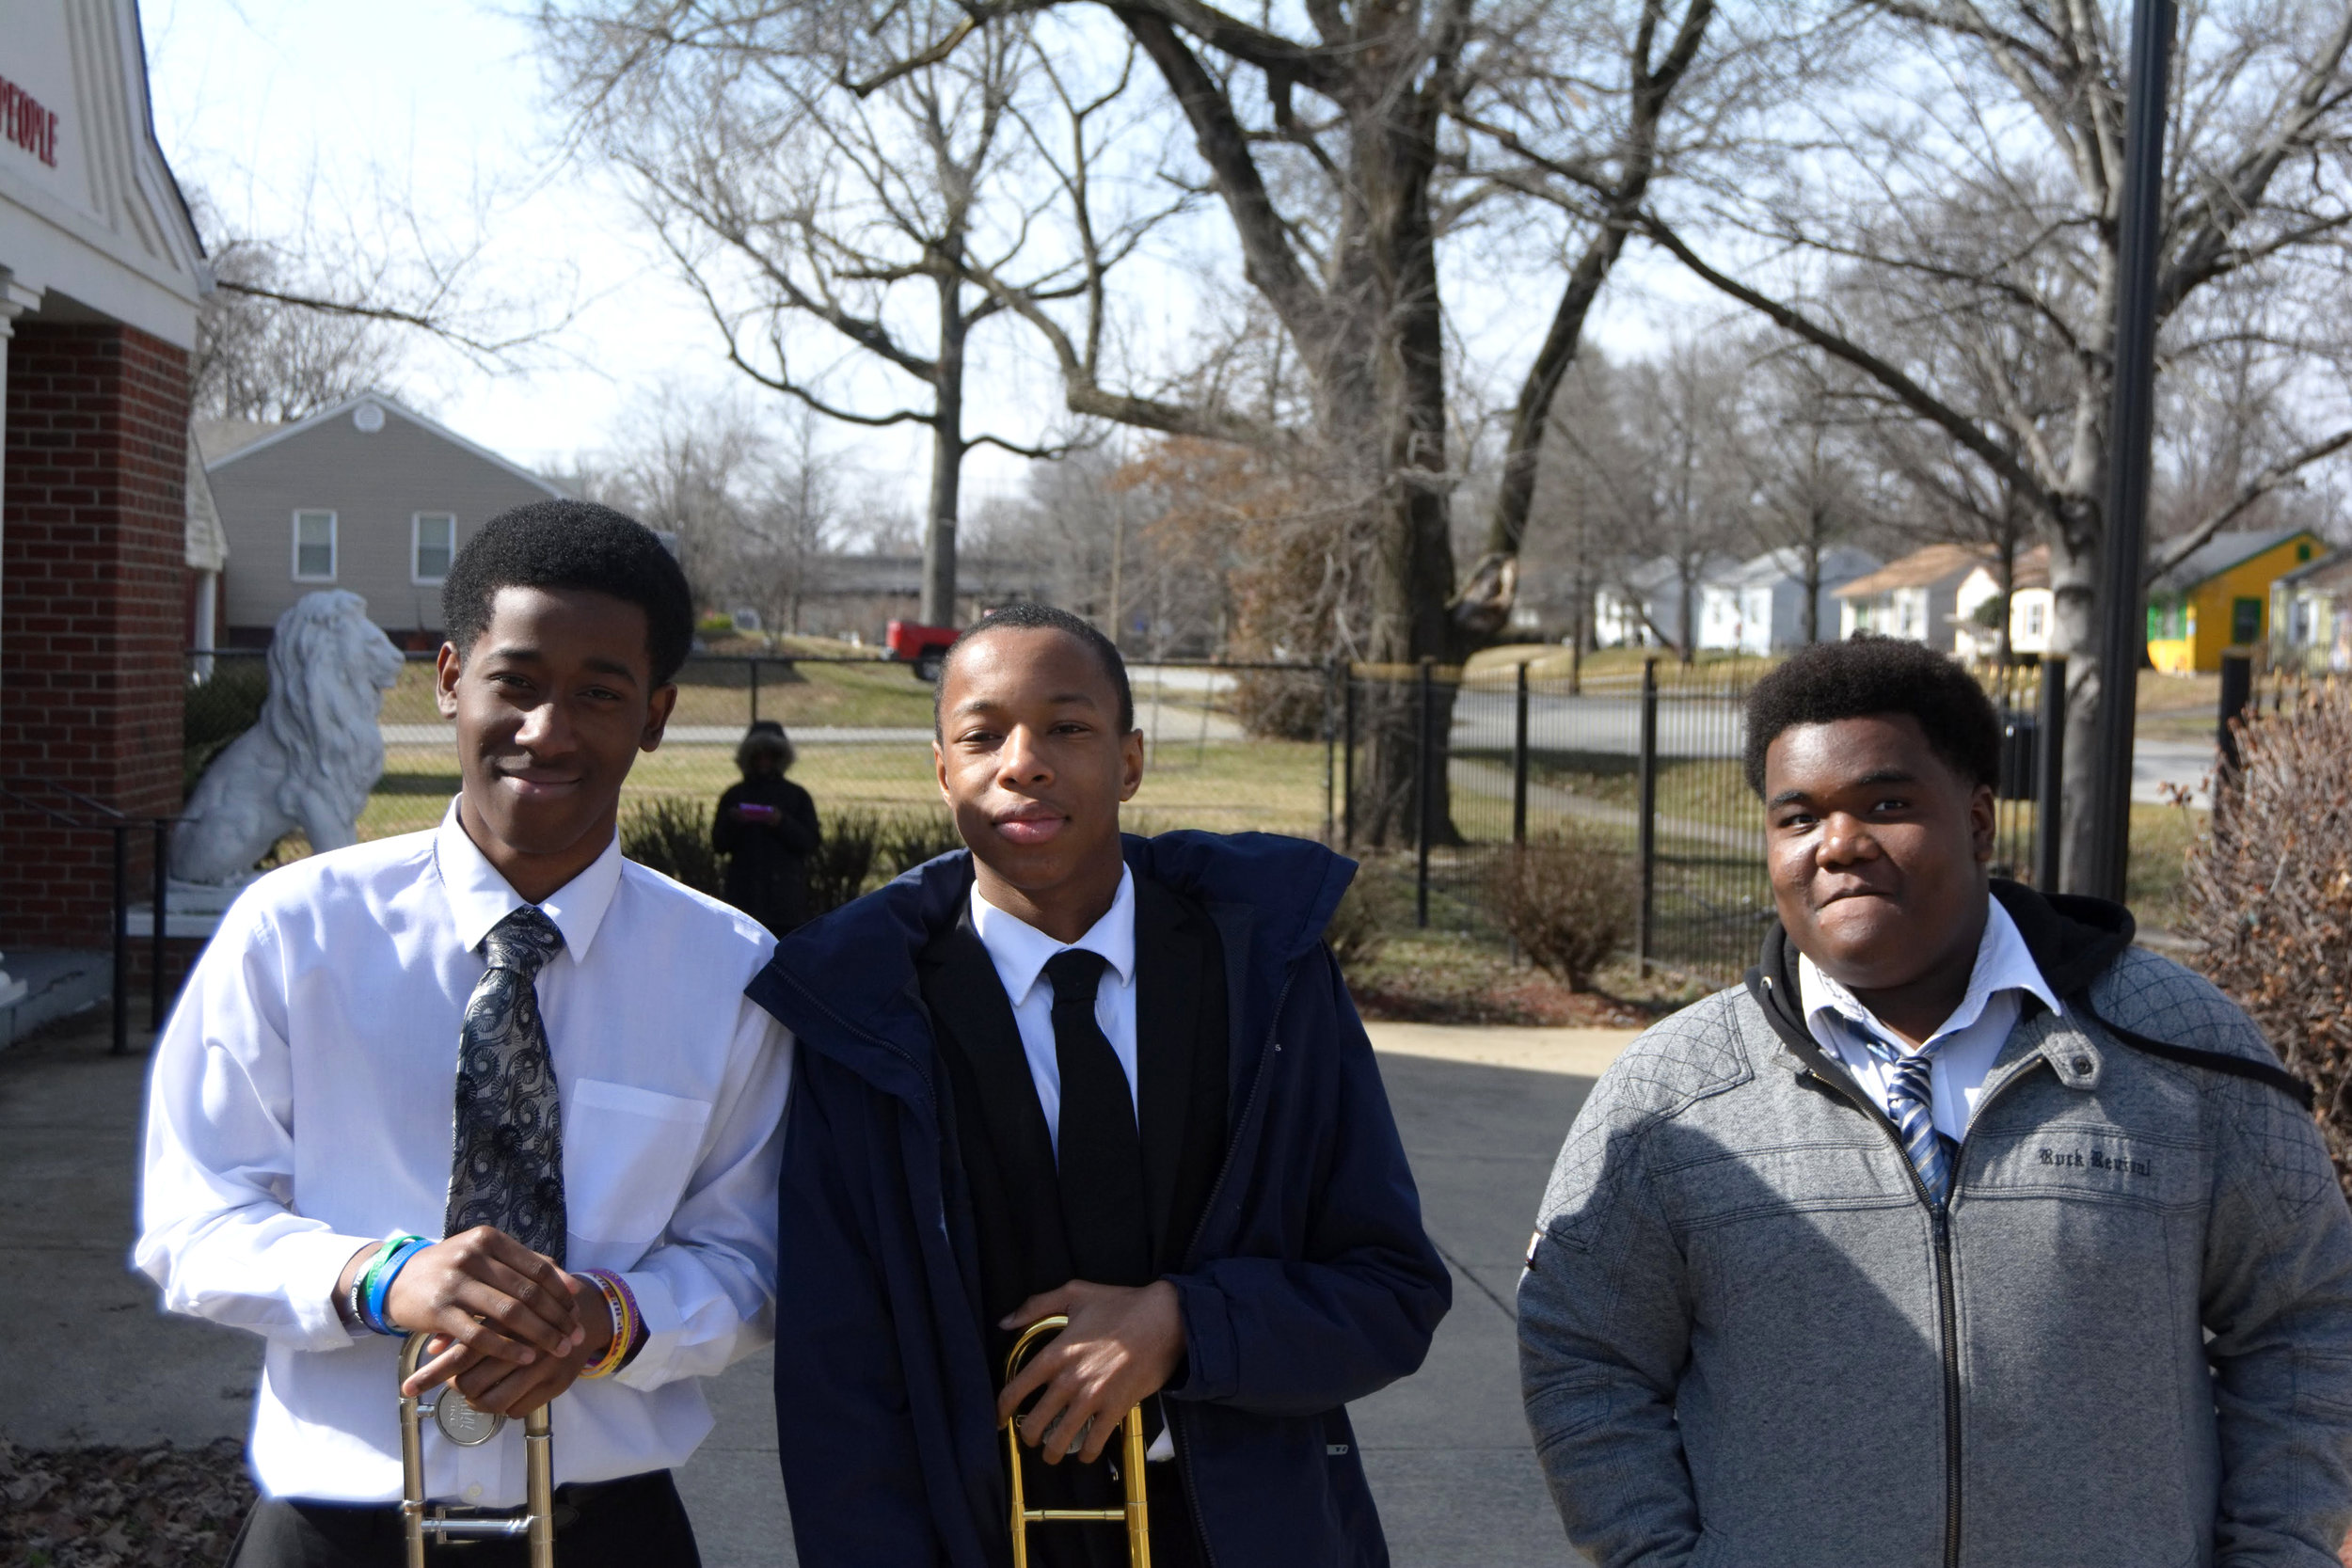 """""""I listen to music and try to keep from going outside. Right now they're gunning for young black men and I don't want to be apart of that. What keeps me focused is music and my schoolwork. Oh, and my parents because they stay on me.  Stay out of trouble and do your best."""" - Omarion, Charles, & Darius, Park DuValle"""